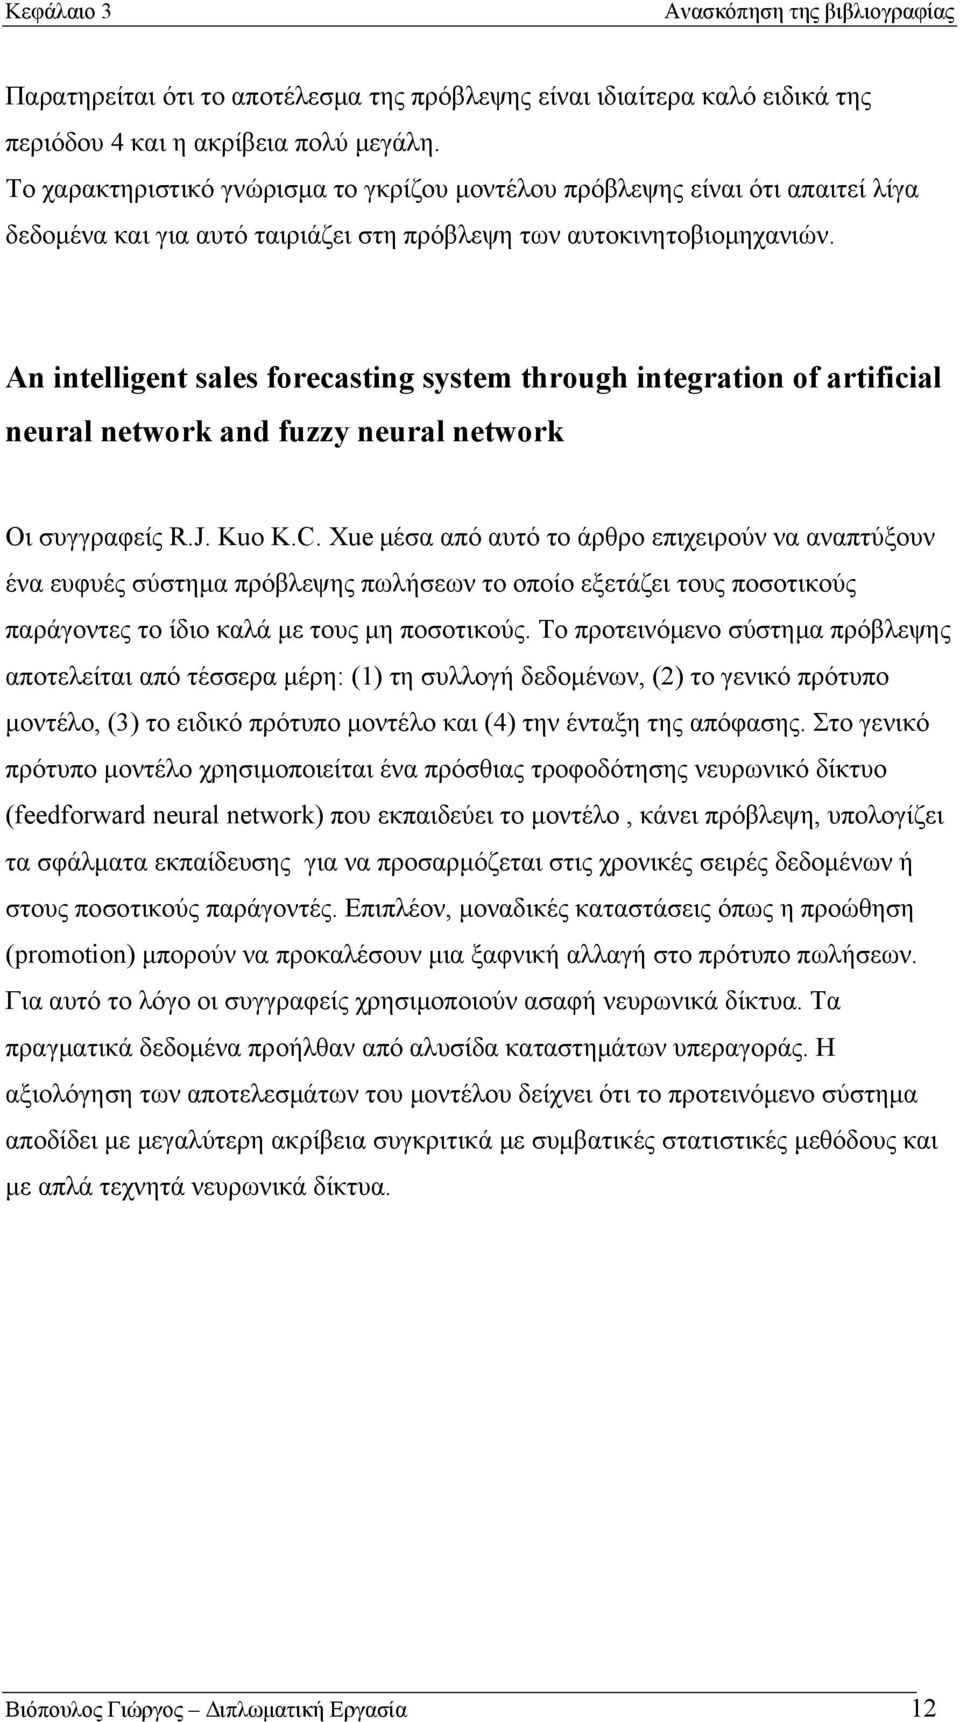 An intelligent sales forecasting system through integration of artificial neural network and fuzzy neural network Οι συγγραφείς R.J. Kuo K.C.